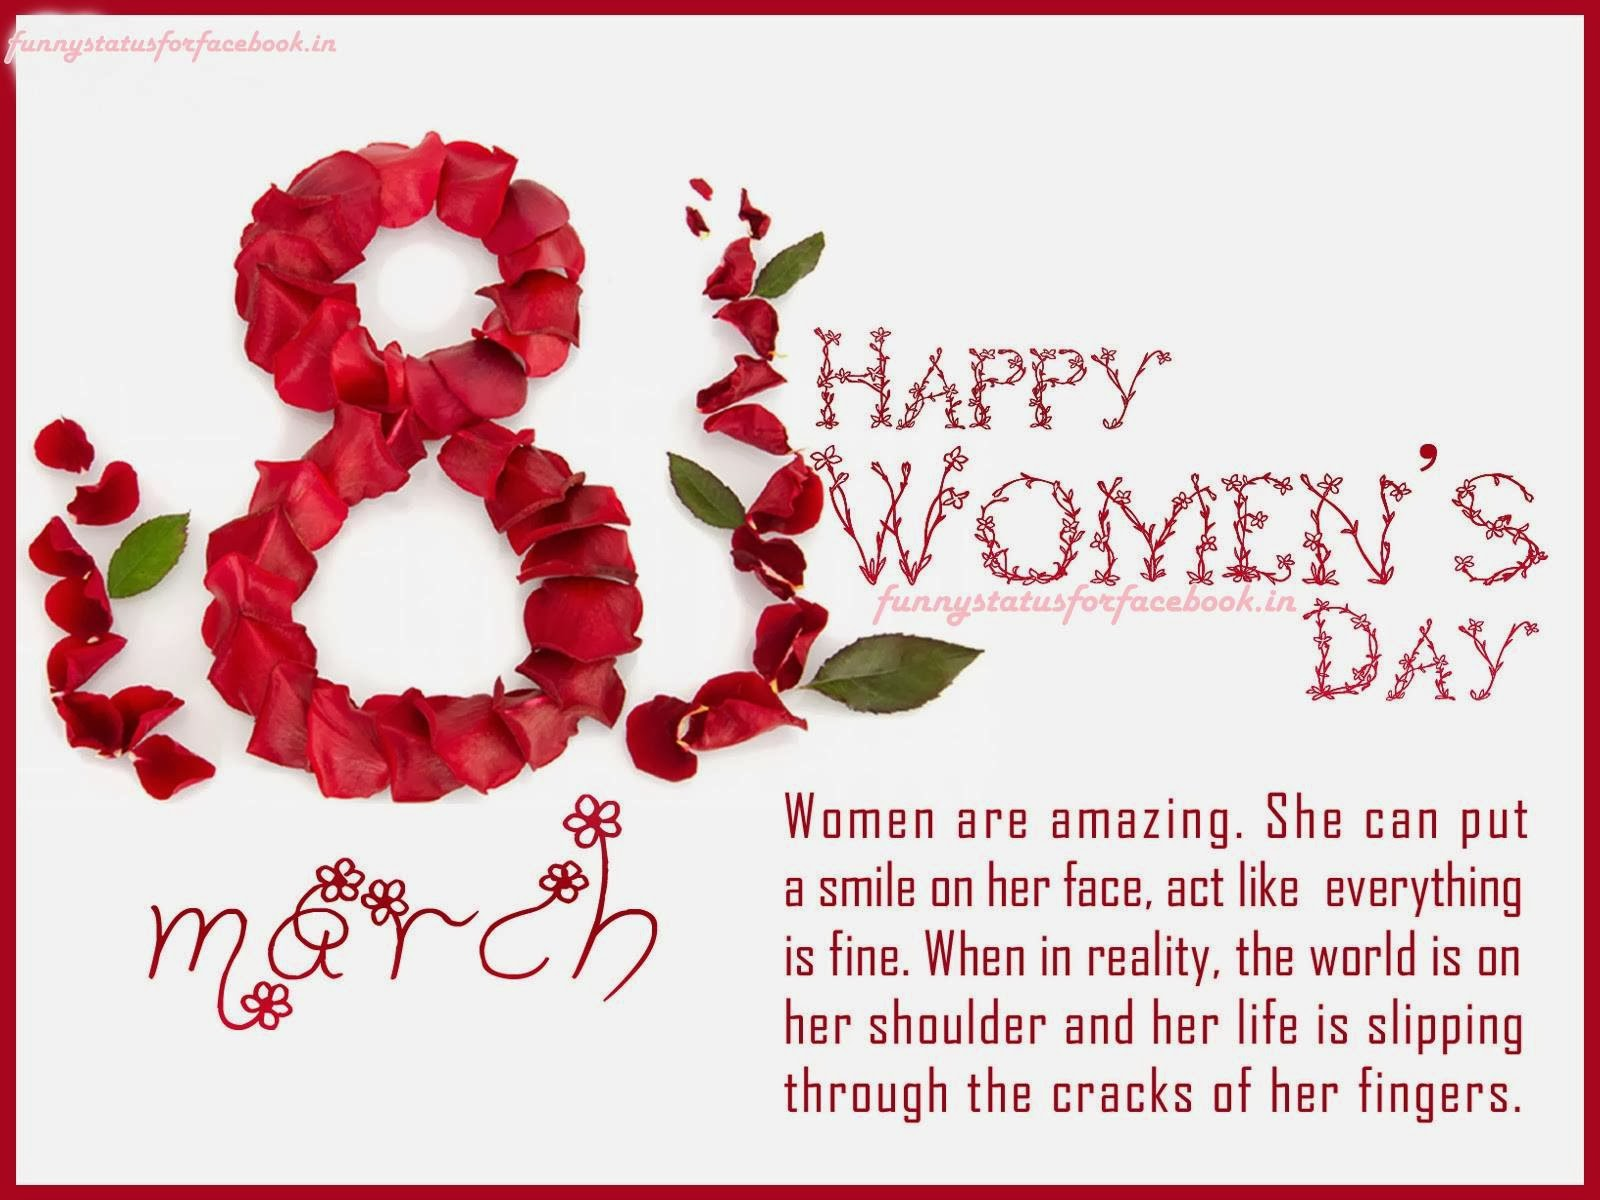 Happy International Women's Day Wishes and Greetings Message SMS Card Image